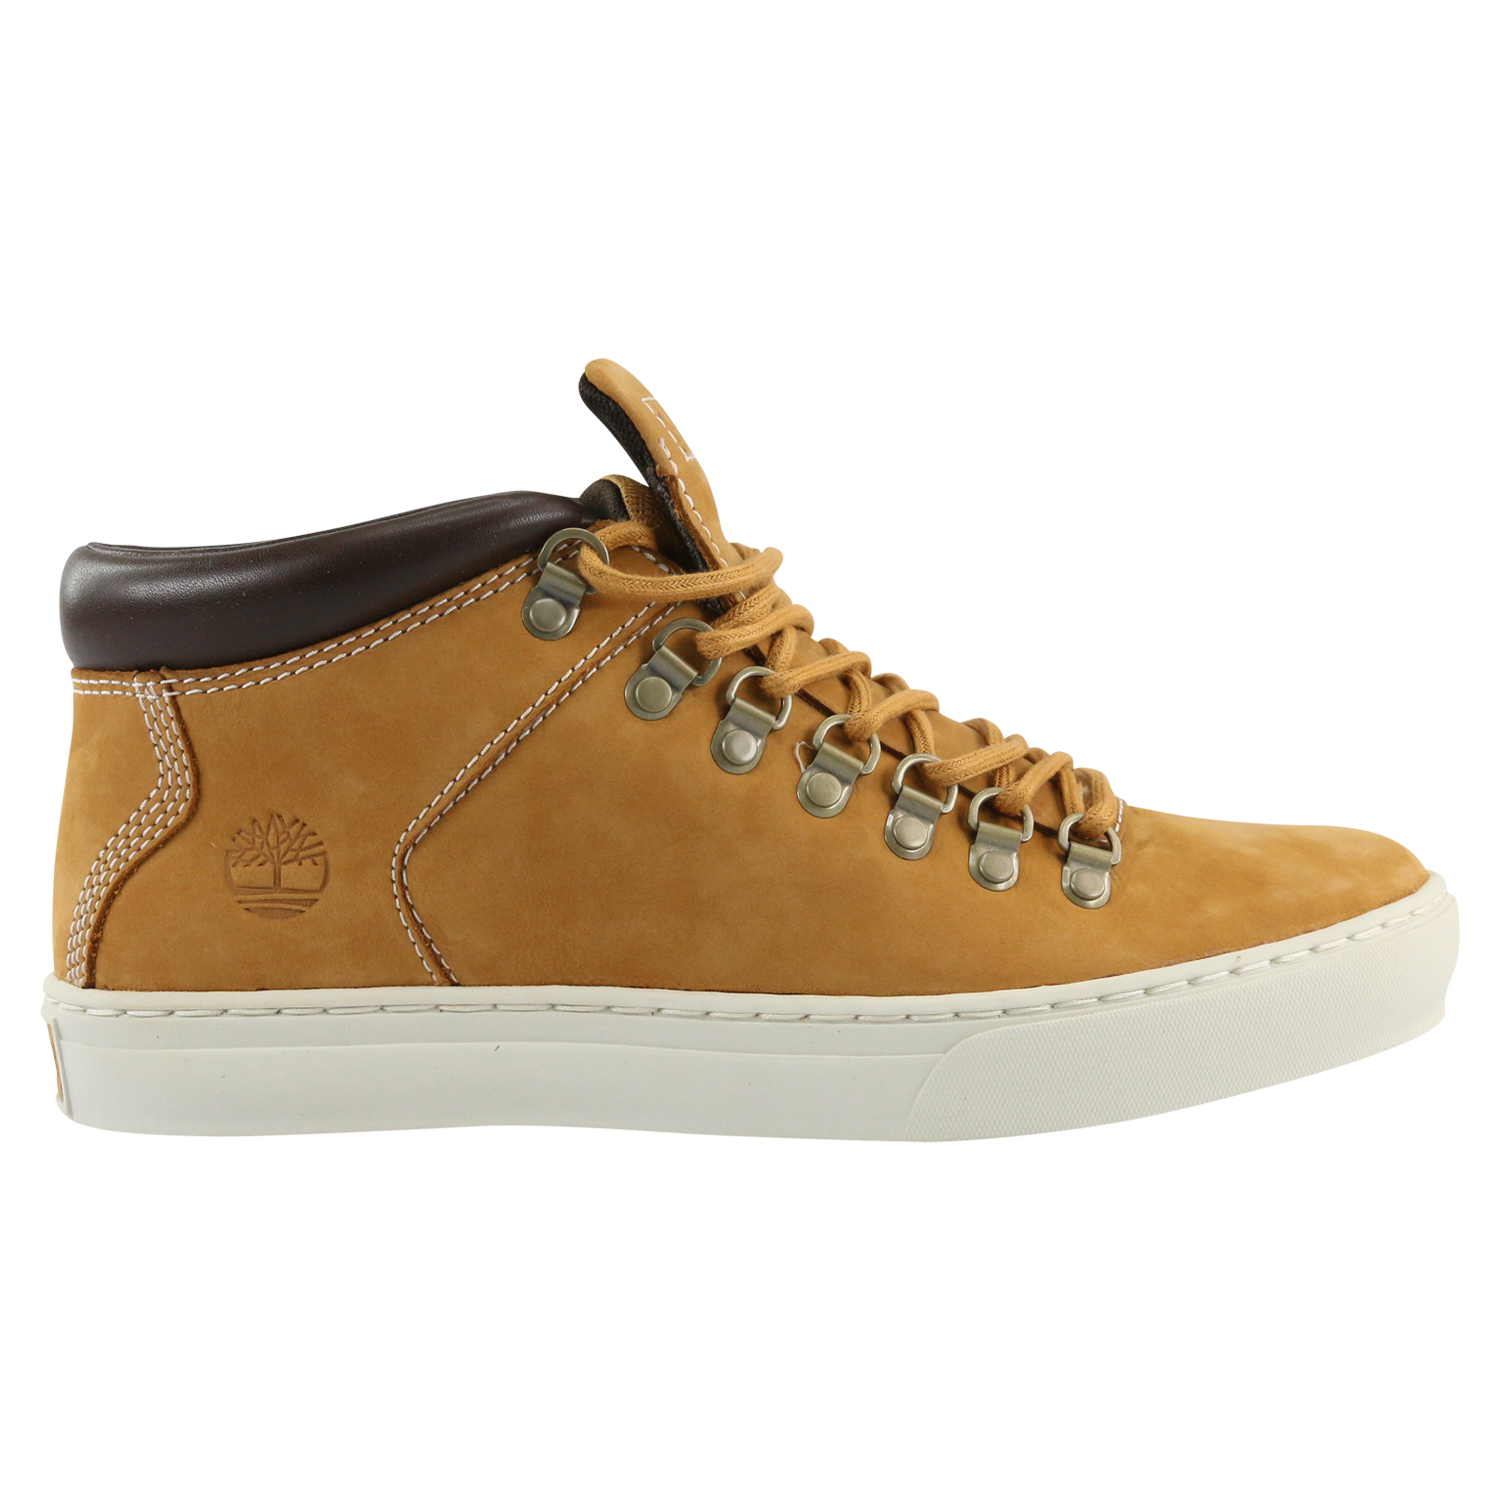 Details about Timberland Adventure 2.0 Cupsole Chukka Alpine Winter Shoes Sneakers Brown a1iyn show original title